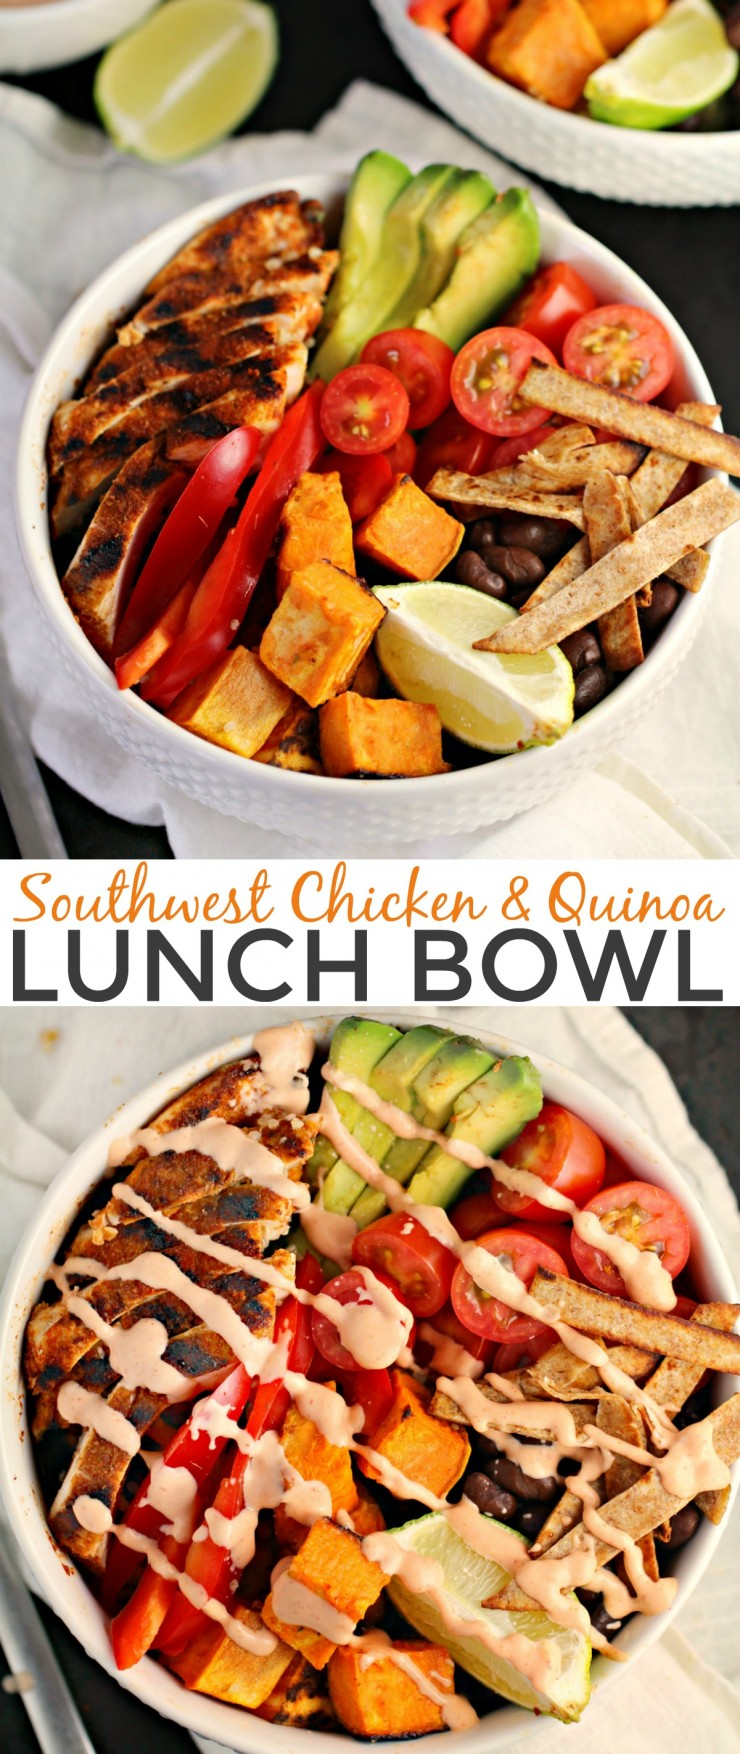 This Southwest Chicken and Quinoa Lunch Bowl is a delicious, and spicy lunch that is so satisfying and full of fresh flavours.